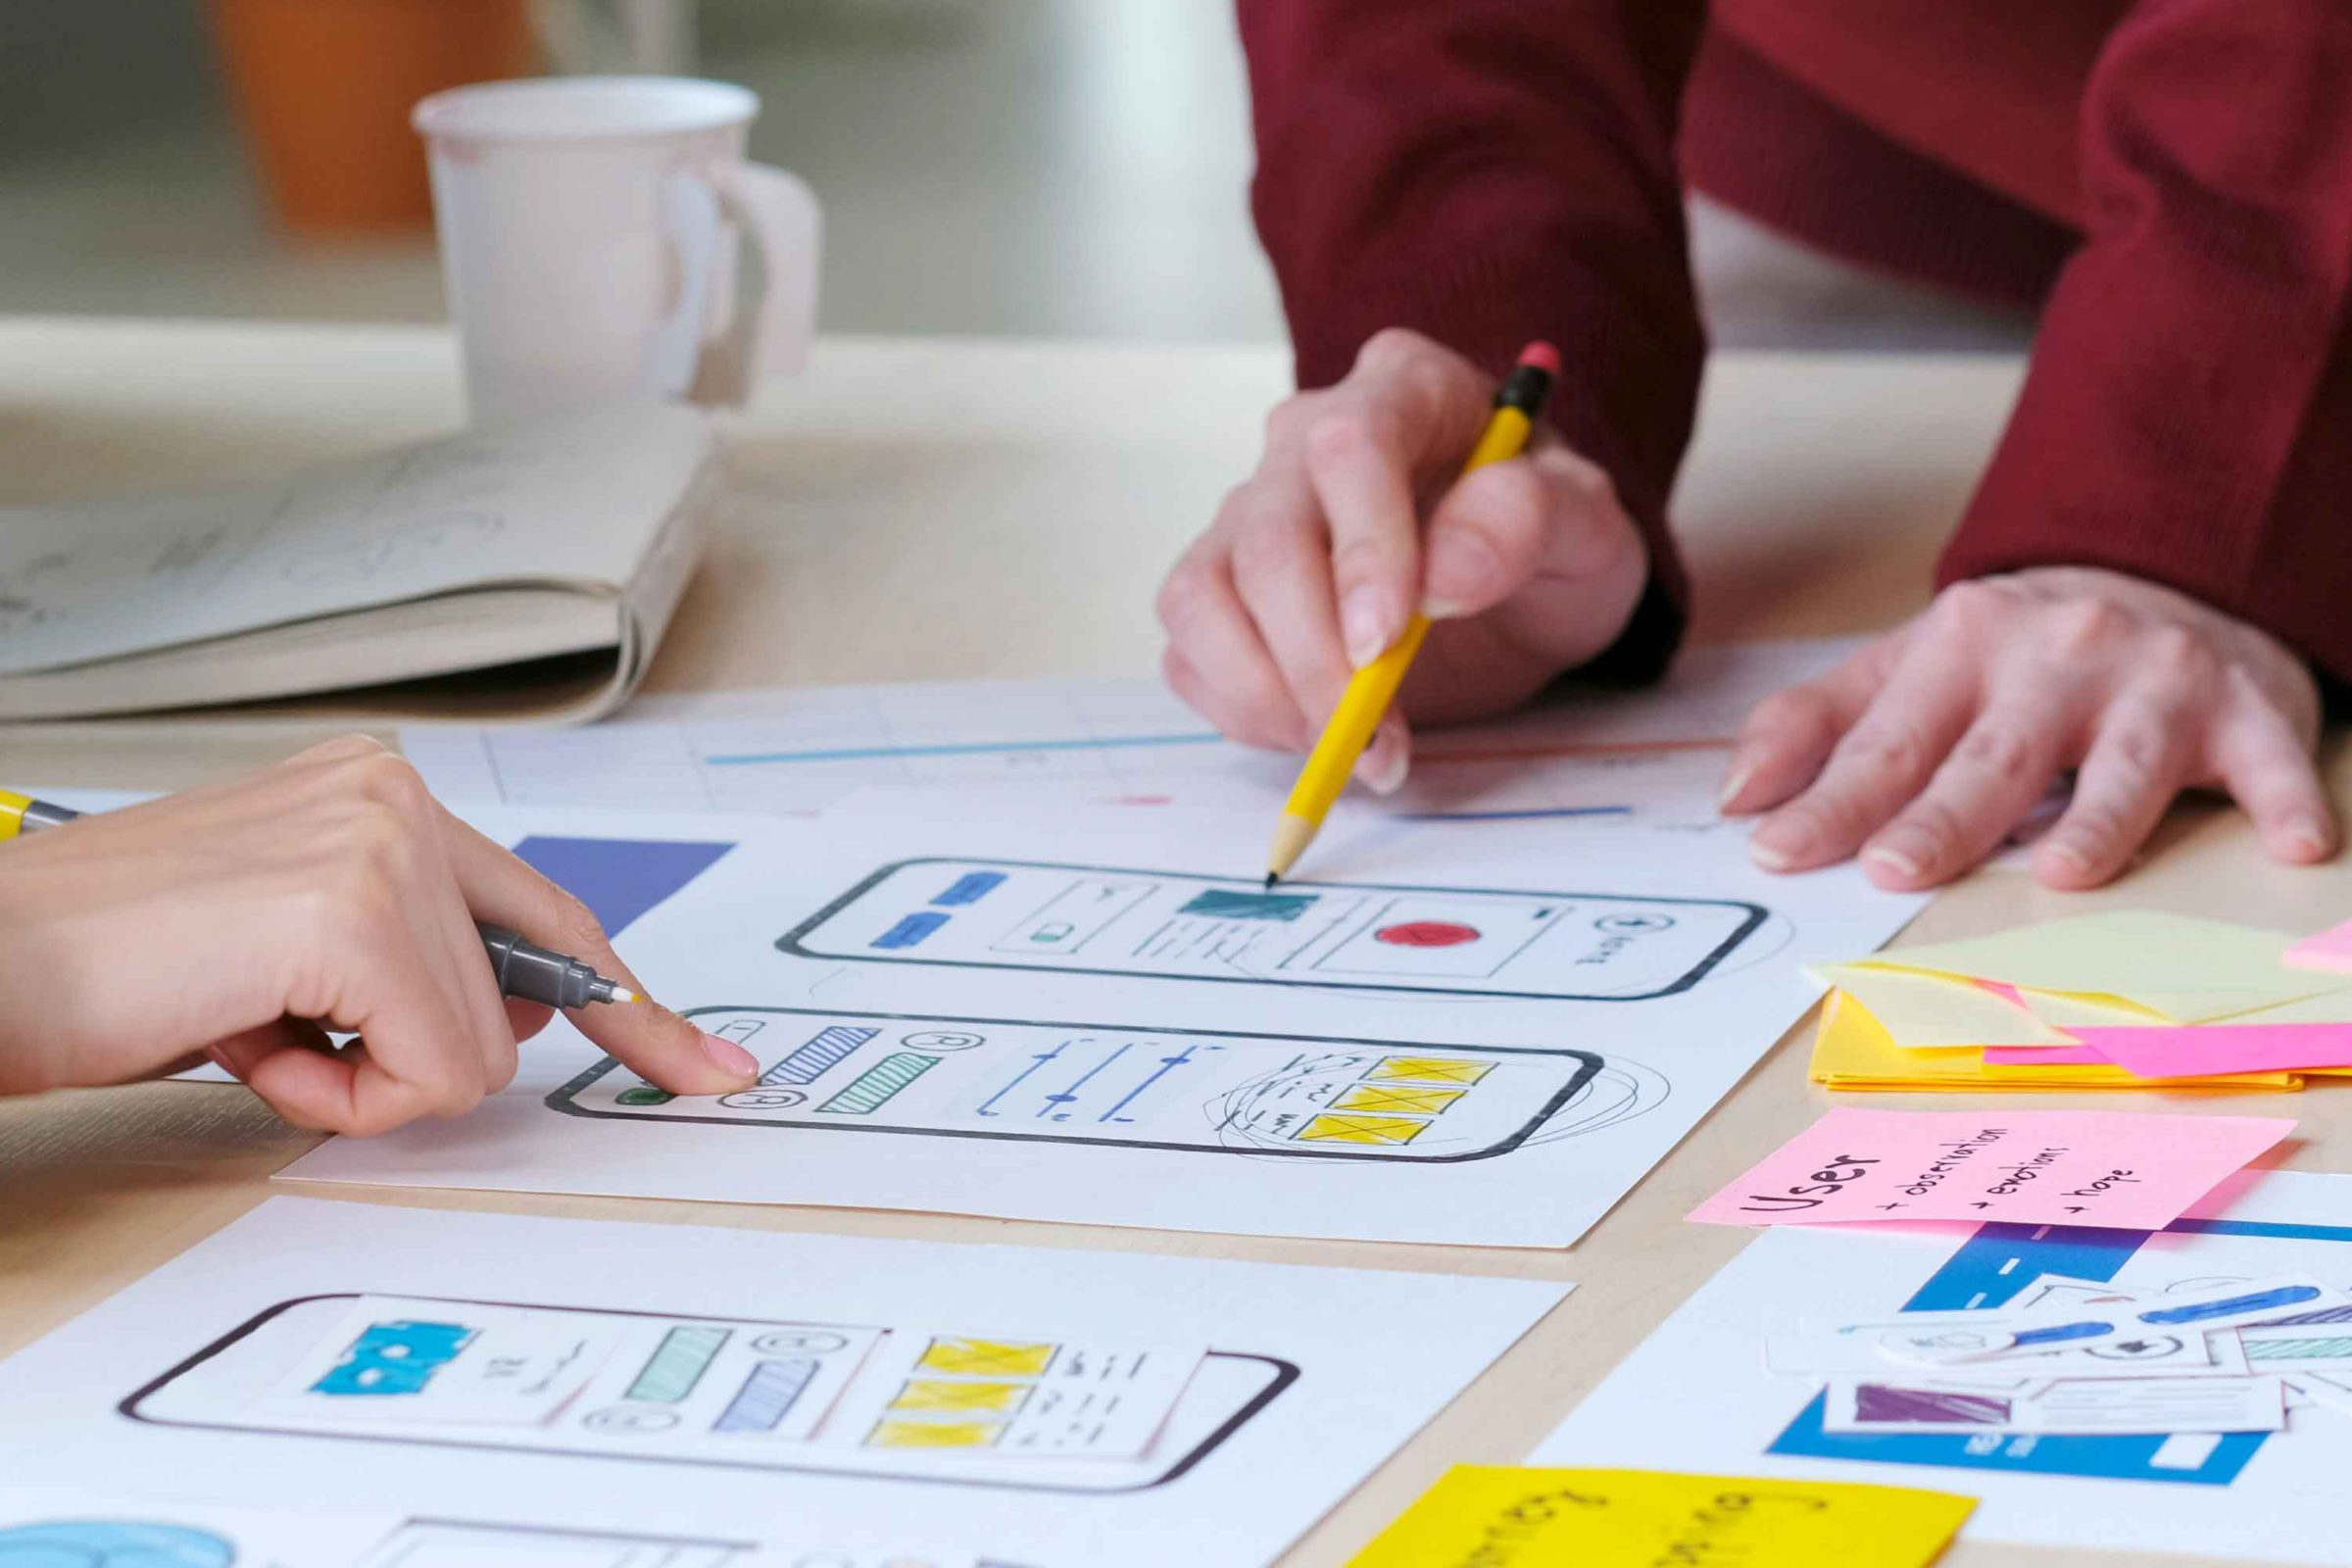 UX design services – how to find and hire a UX designer in 2021